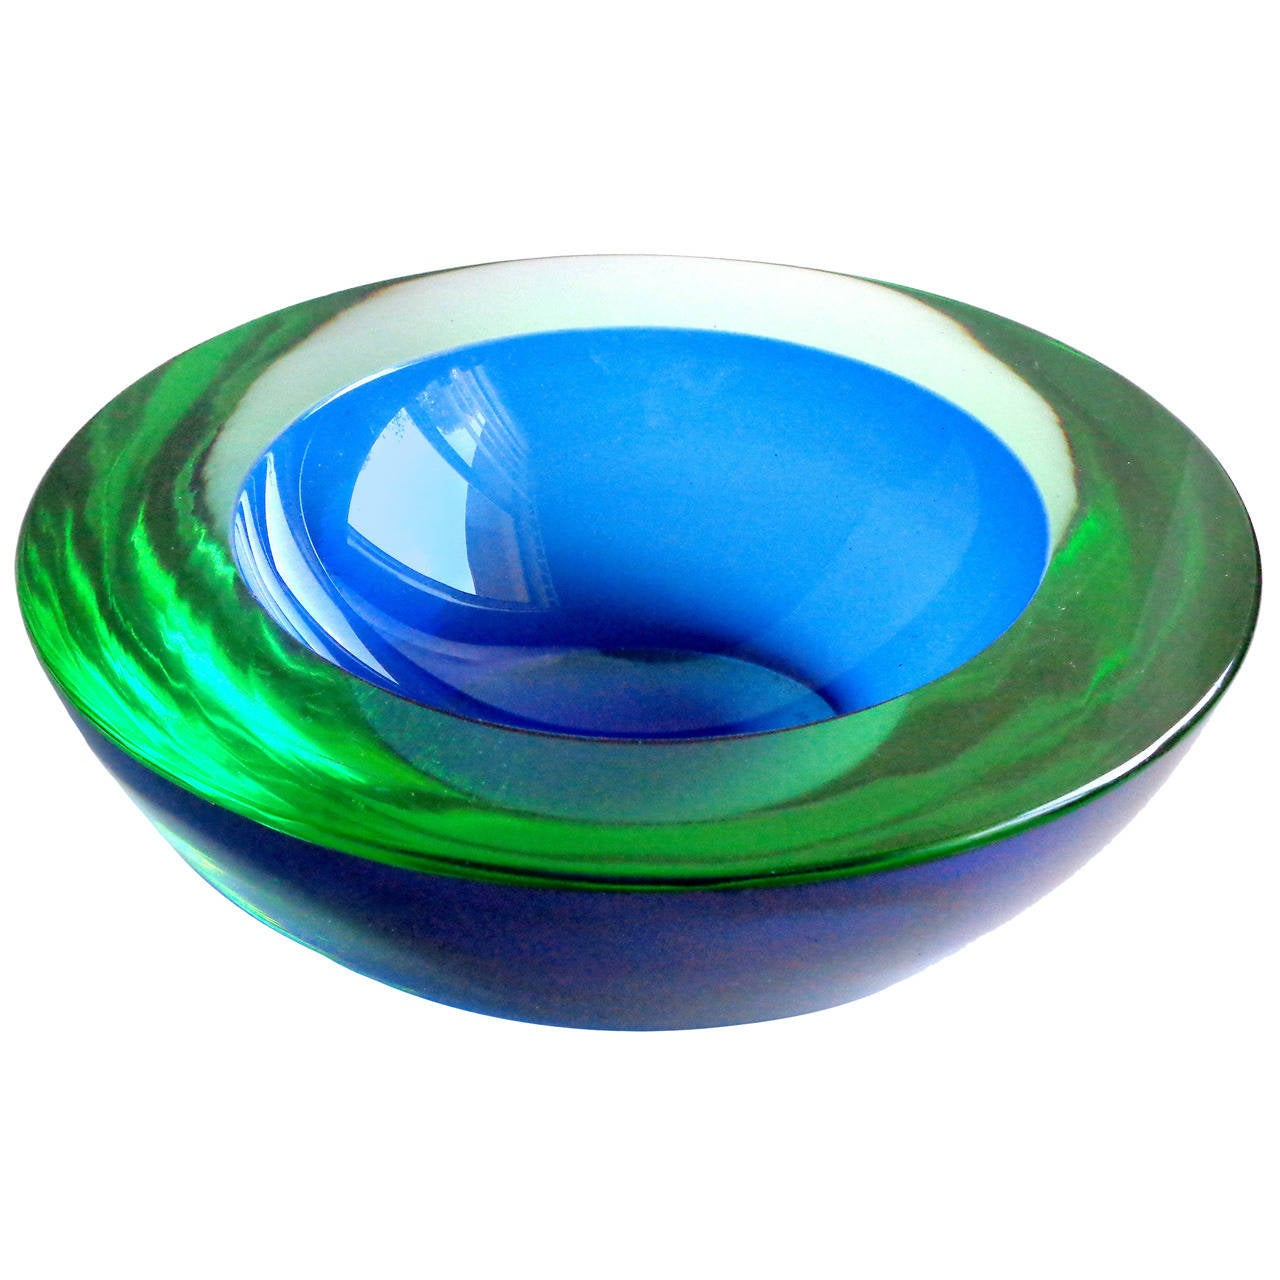 Decorative Bowls Blue Green Sommerso Round Italian Art Glass Decorative Bowl At 1stdibs